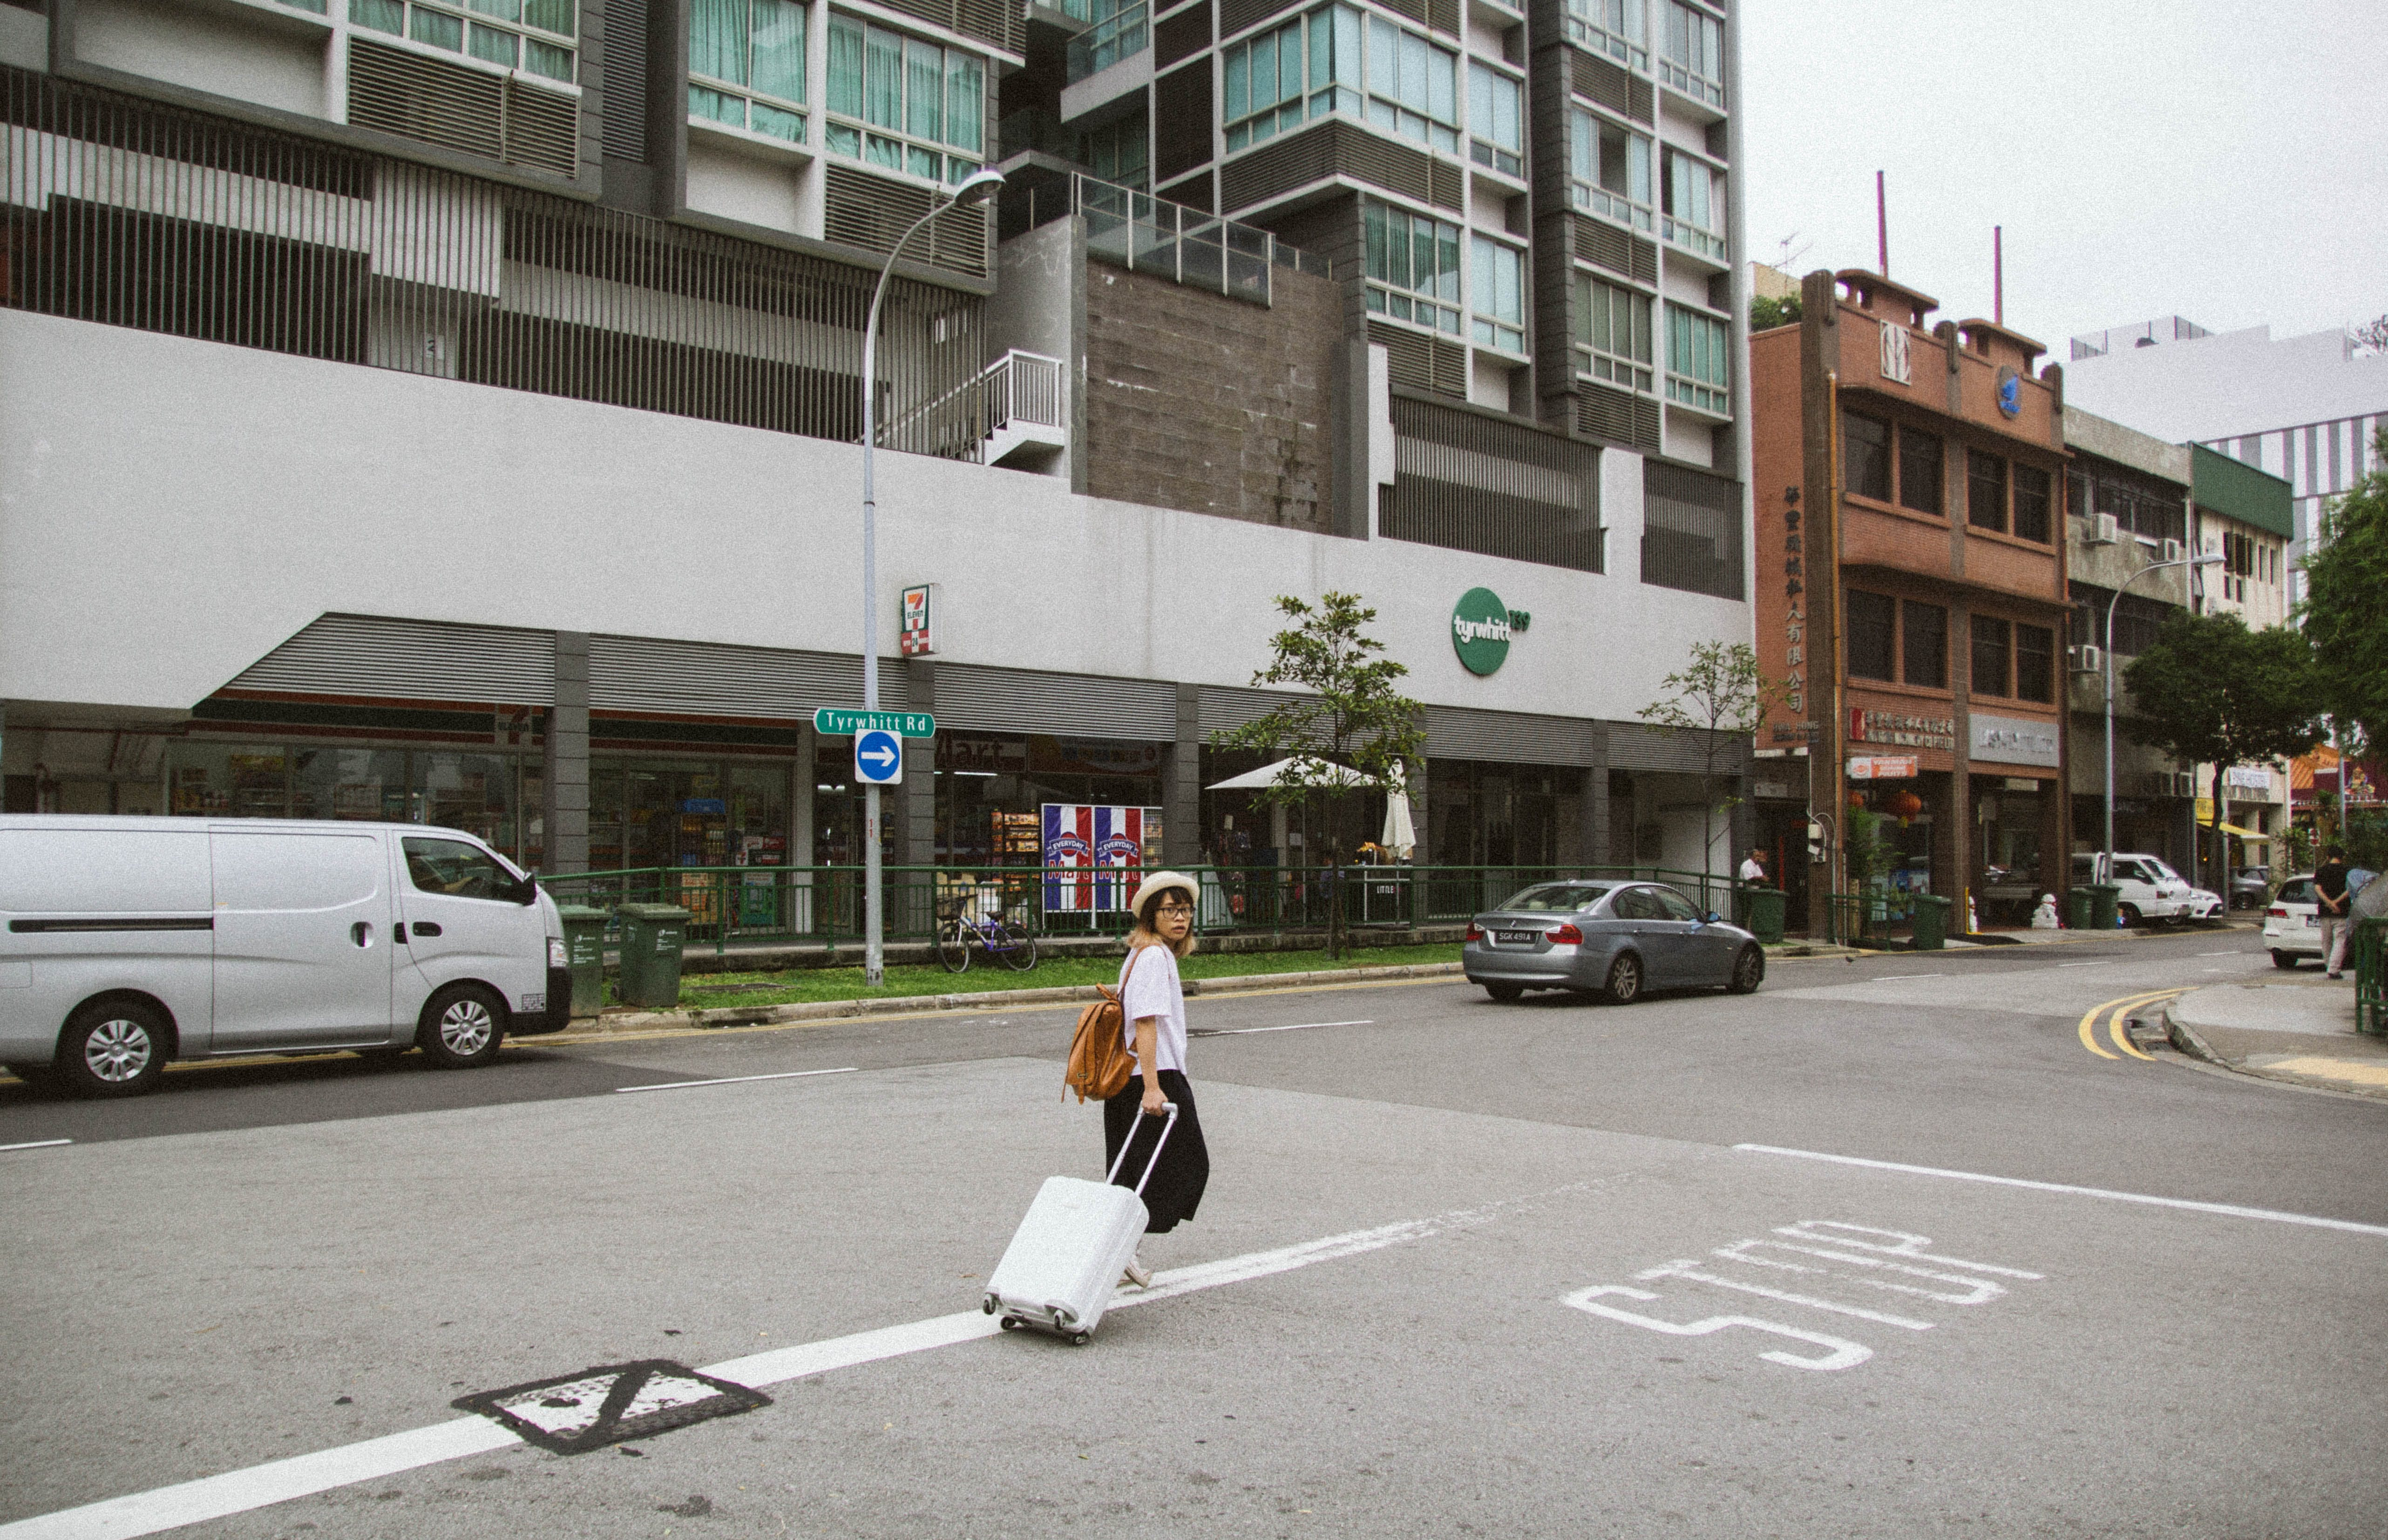 Woman Pulling Luggage Bag While Walking Toward Building